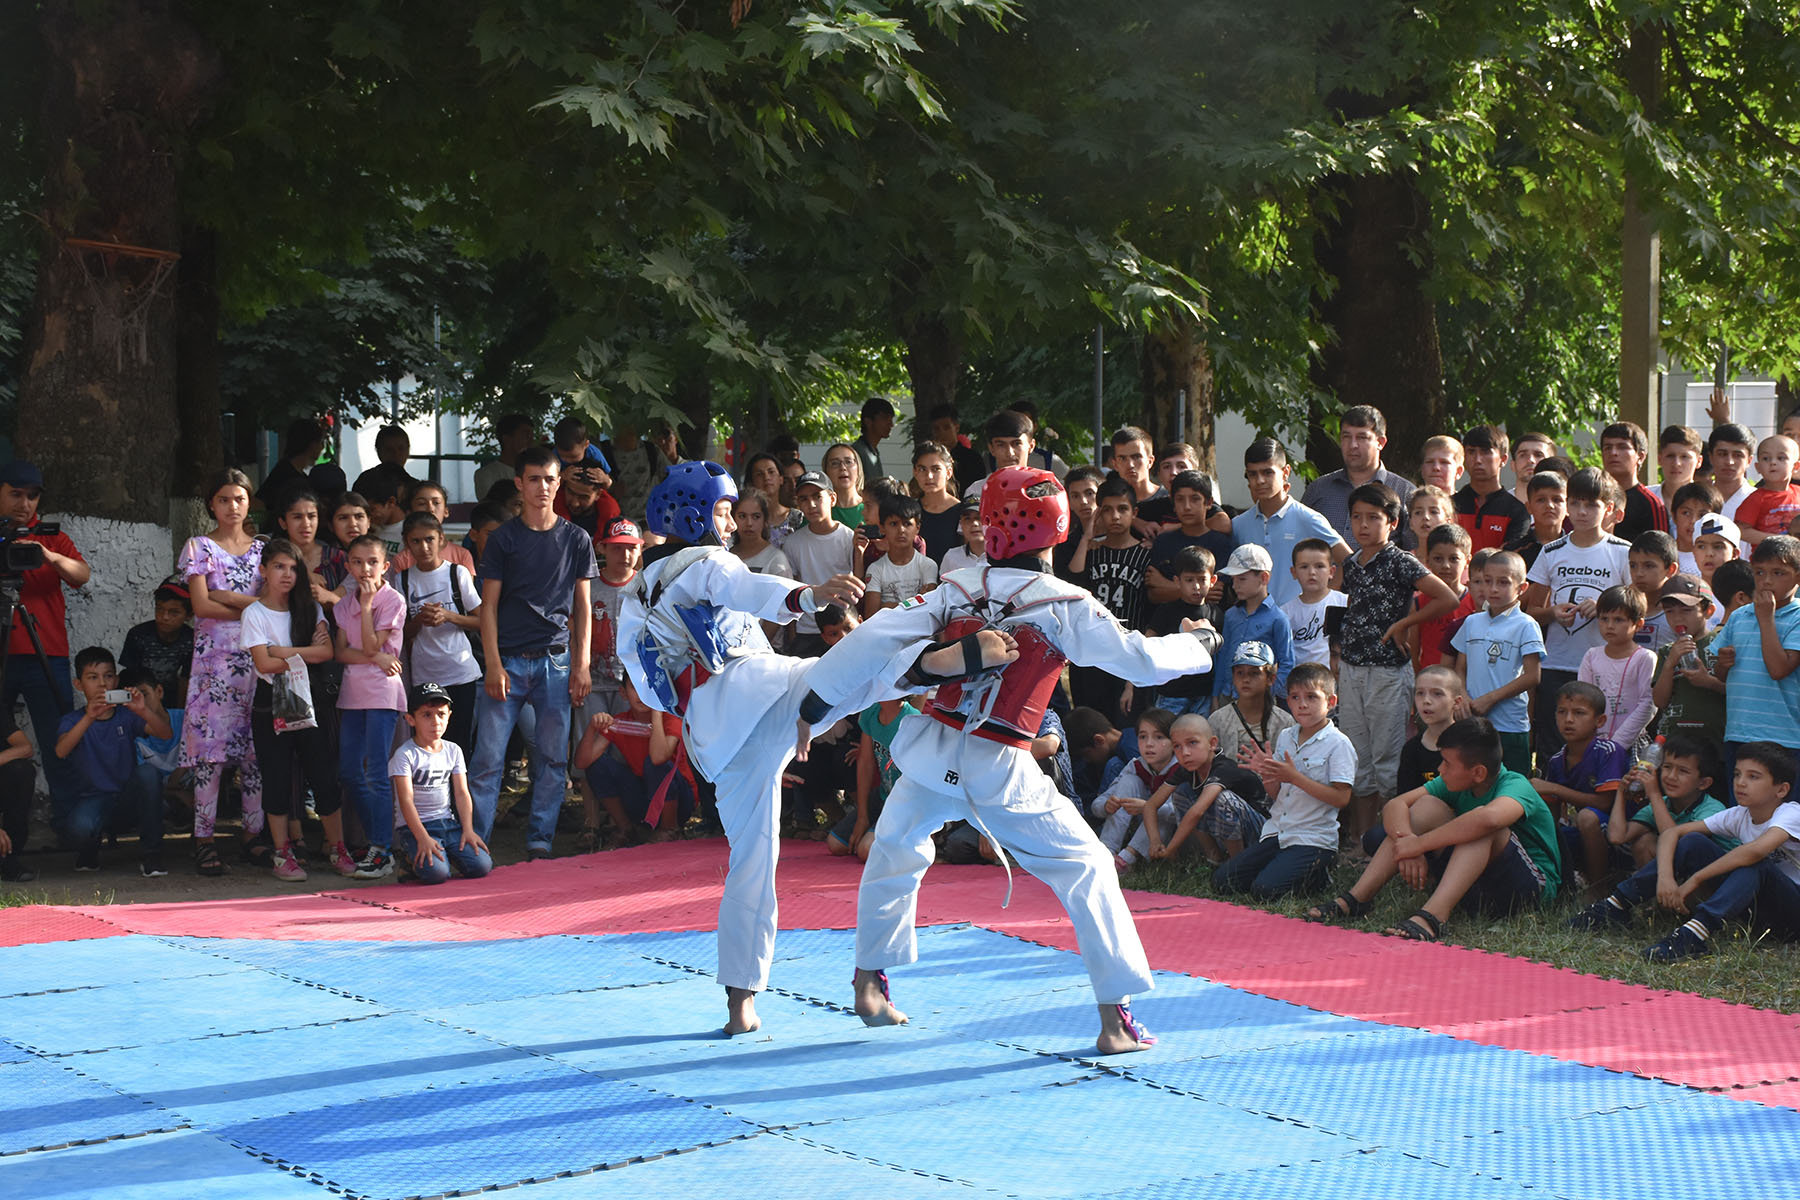 Increase access to sport for youth from in marginalised communities in central Asia